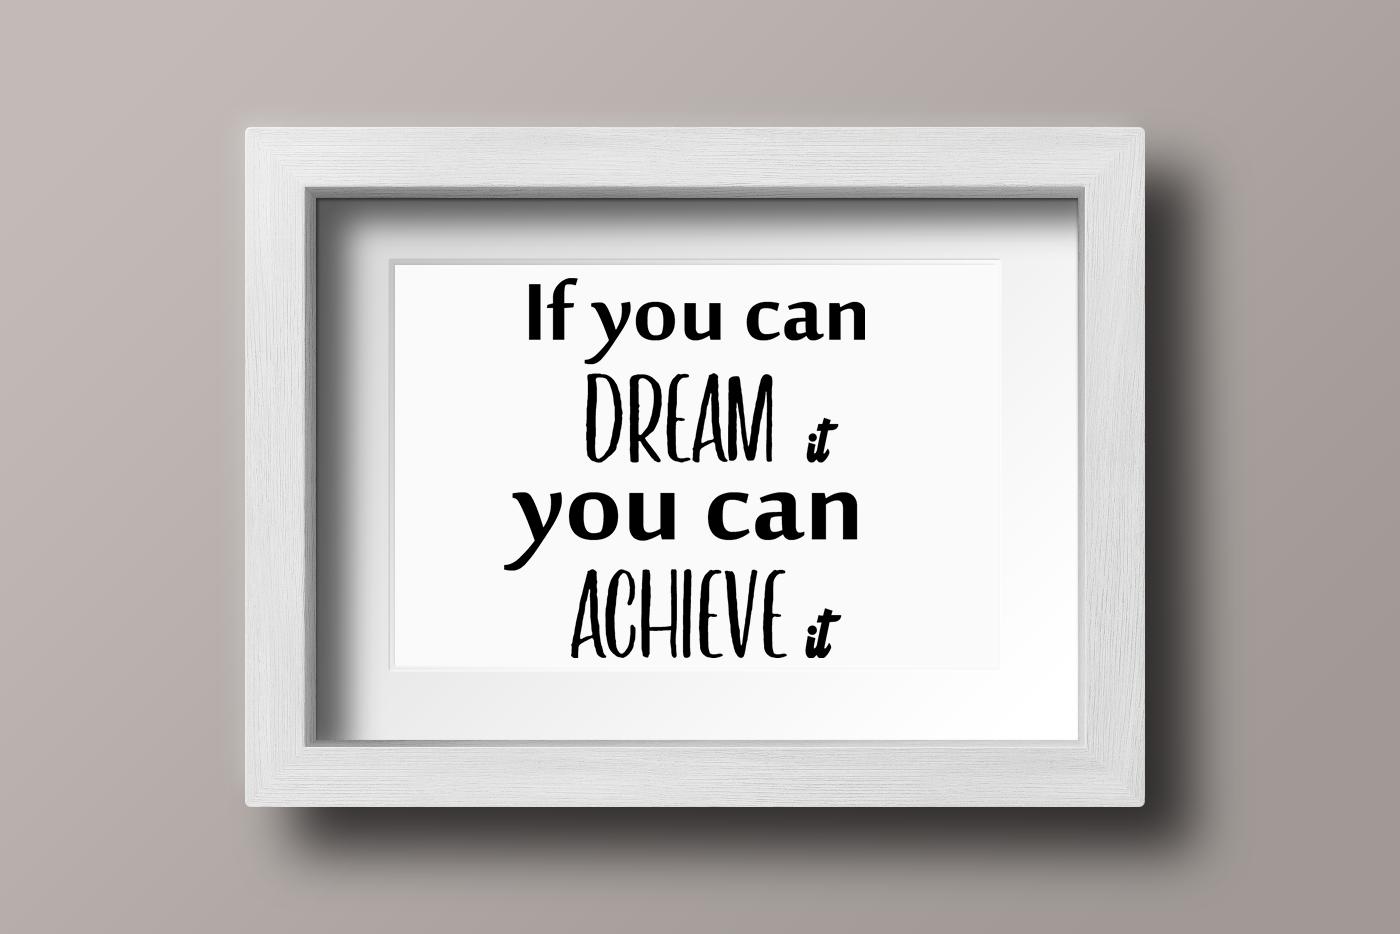 Download Free If You Can Dream It You Can Achieve It Graphic By Mragilprasetyo123 Creative Fabrica for Cricut Explore, Silhouette and other cutting machines.